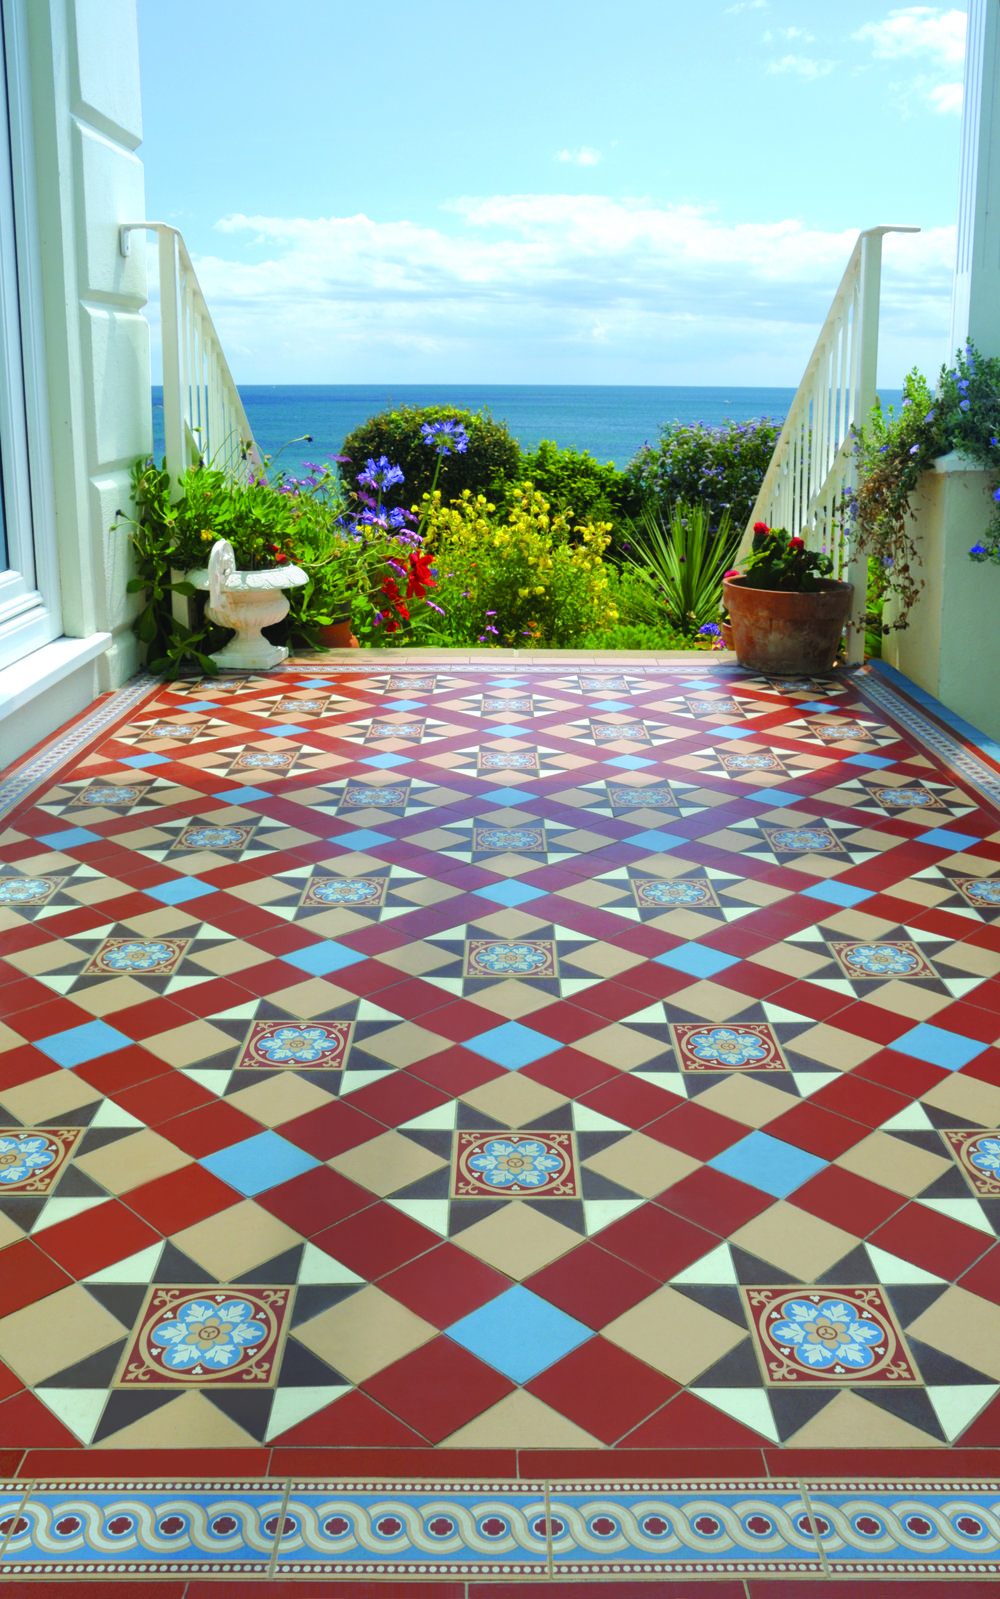 Original Style - VFT - Blenheim pattern with Telford border in Red, Blue, Buff, Brown and White.jpg